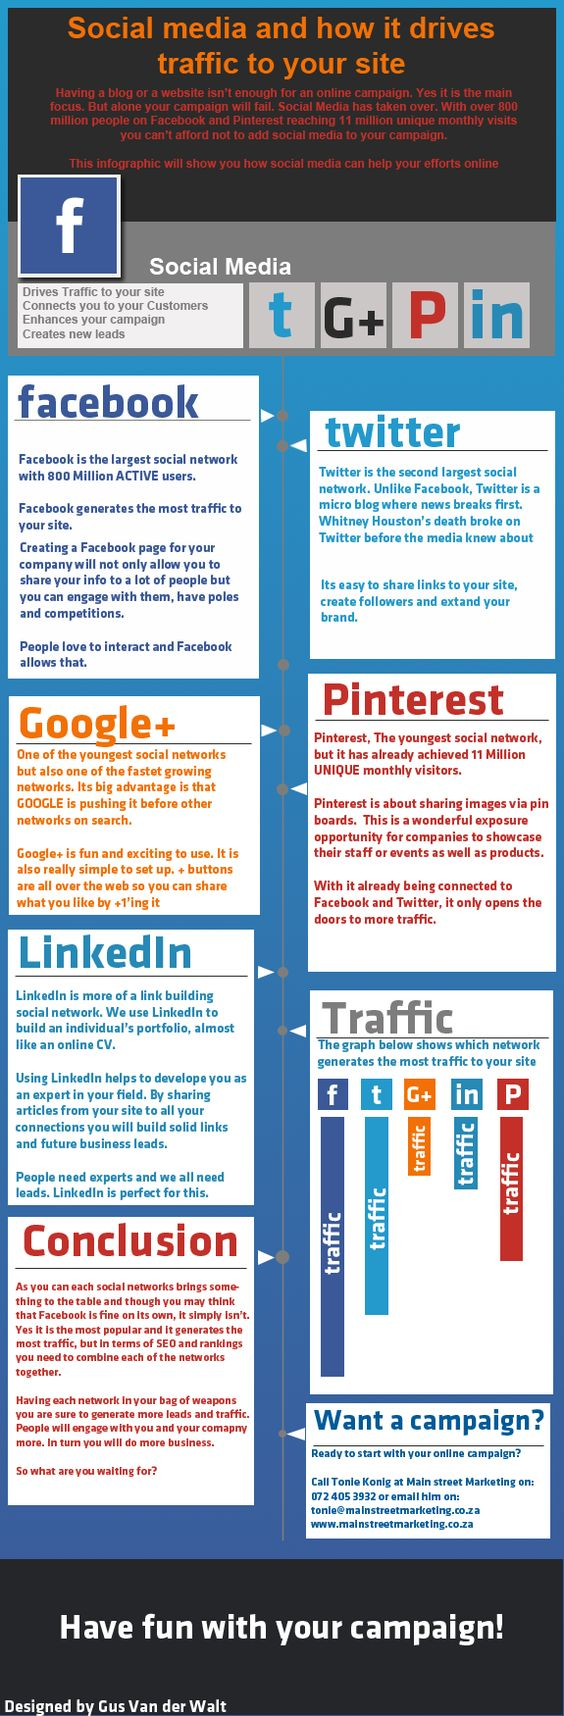 Social Media and how it Drives Traffic to Your Site. #socialmedia #traffic #Facebook #Twitter #Pinterest #LinkedIn